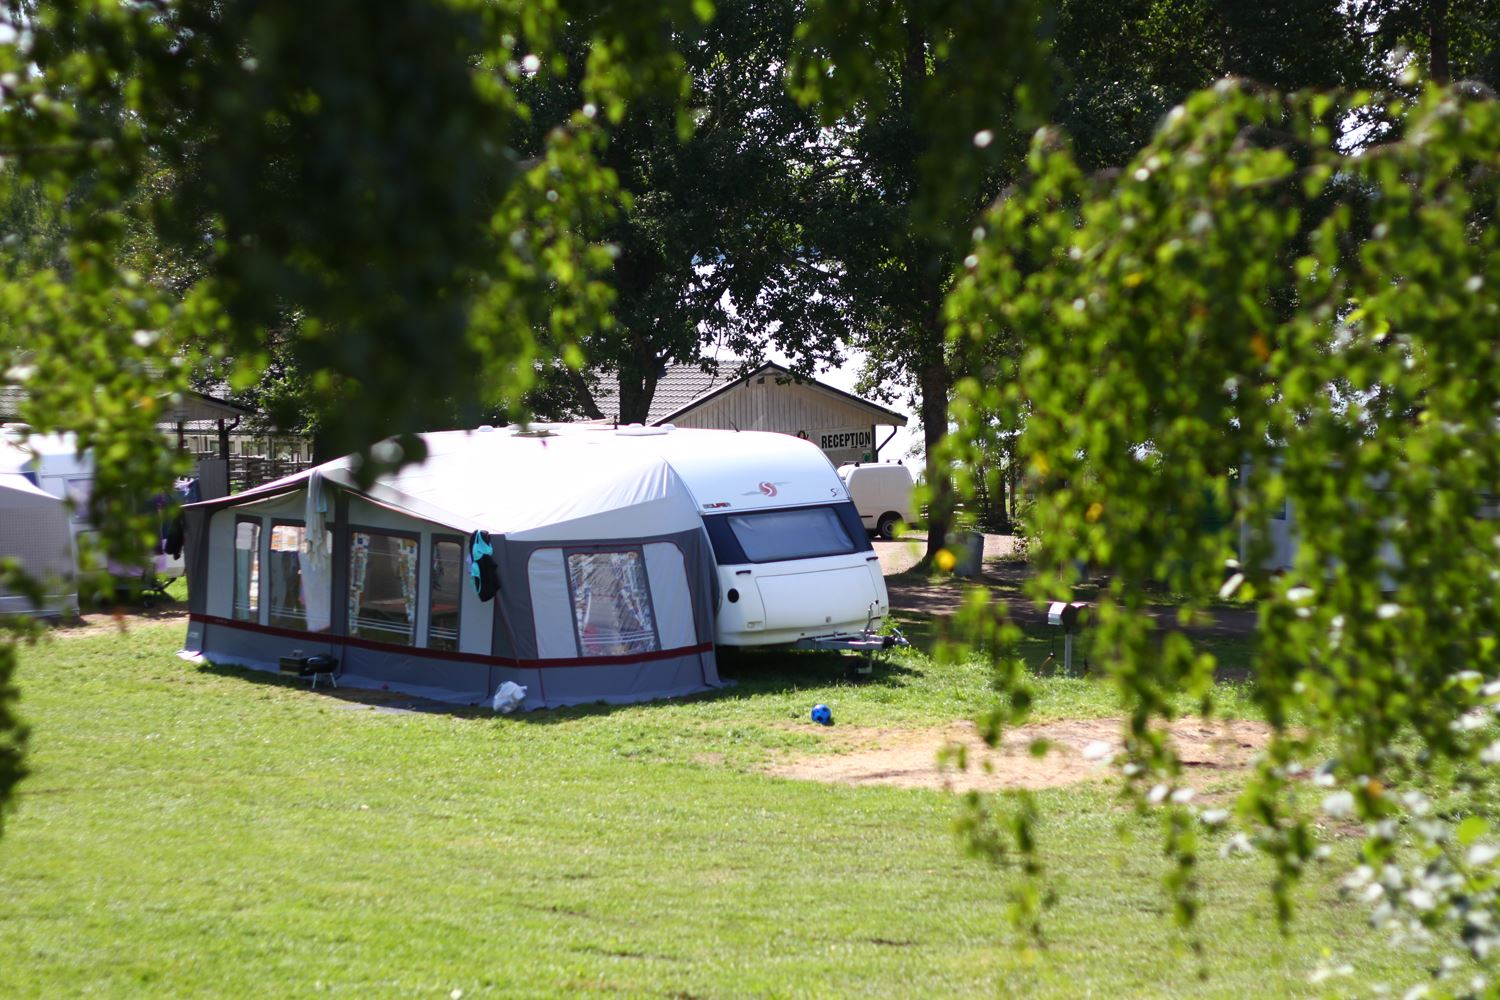 Vimmerby Camping Chalet Village